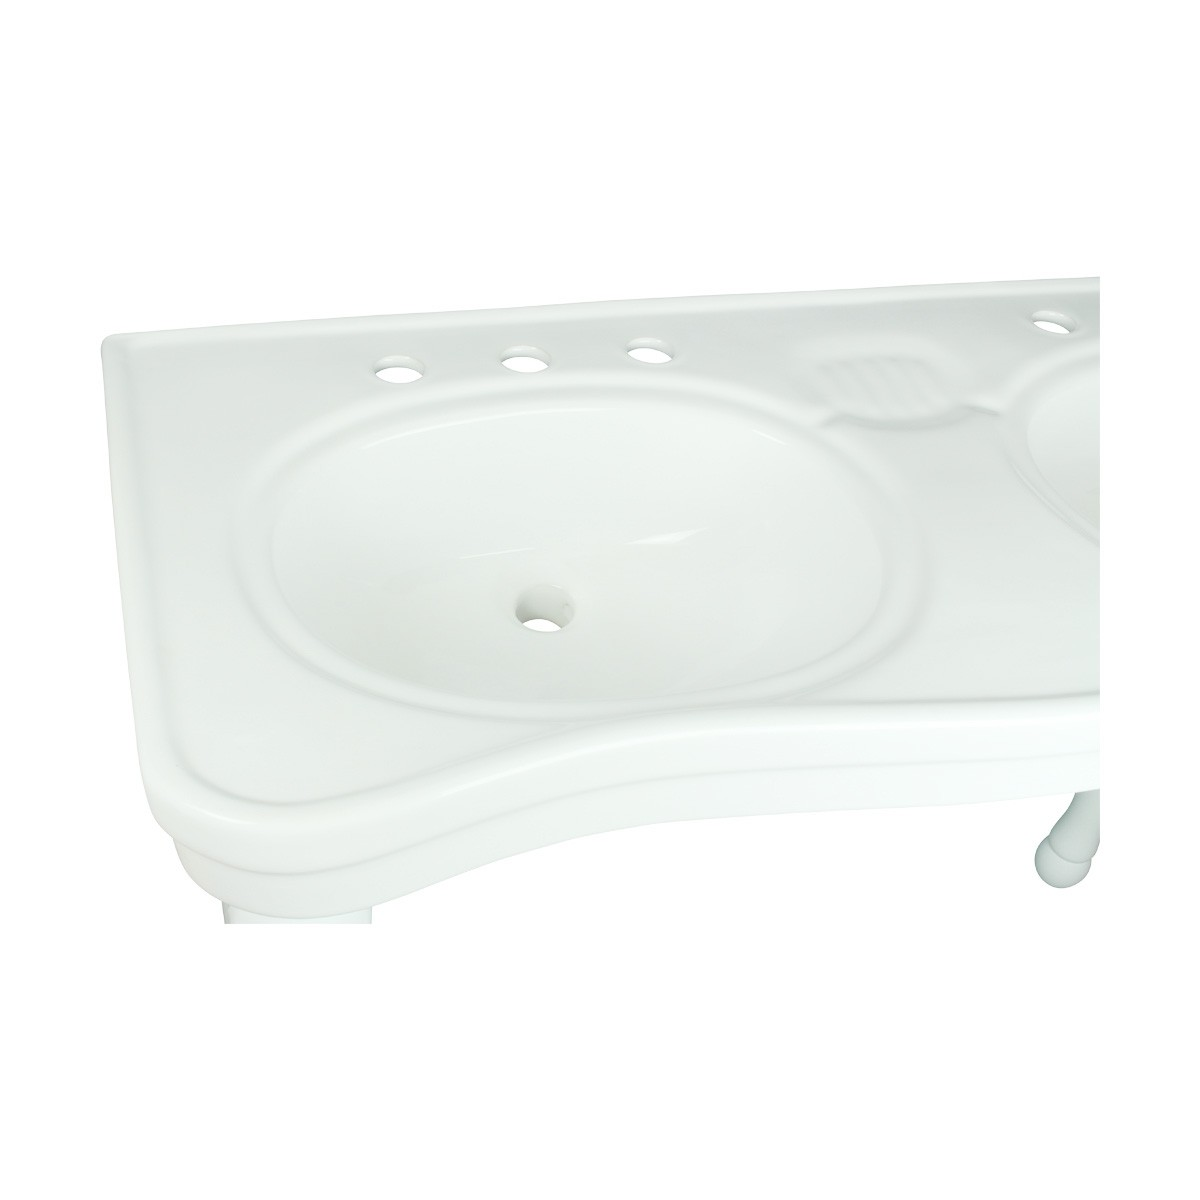 Porcelain Double Console Sink Glossy Console Sinks Bathroom Console Sink